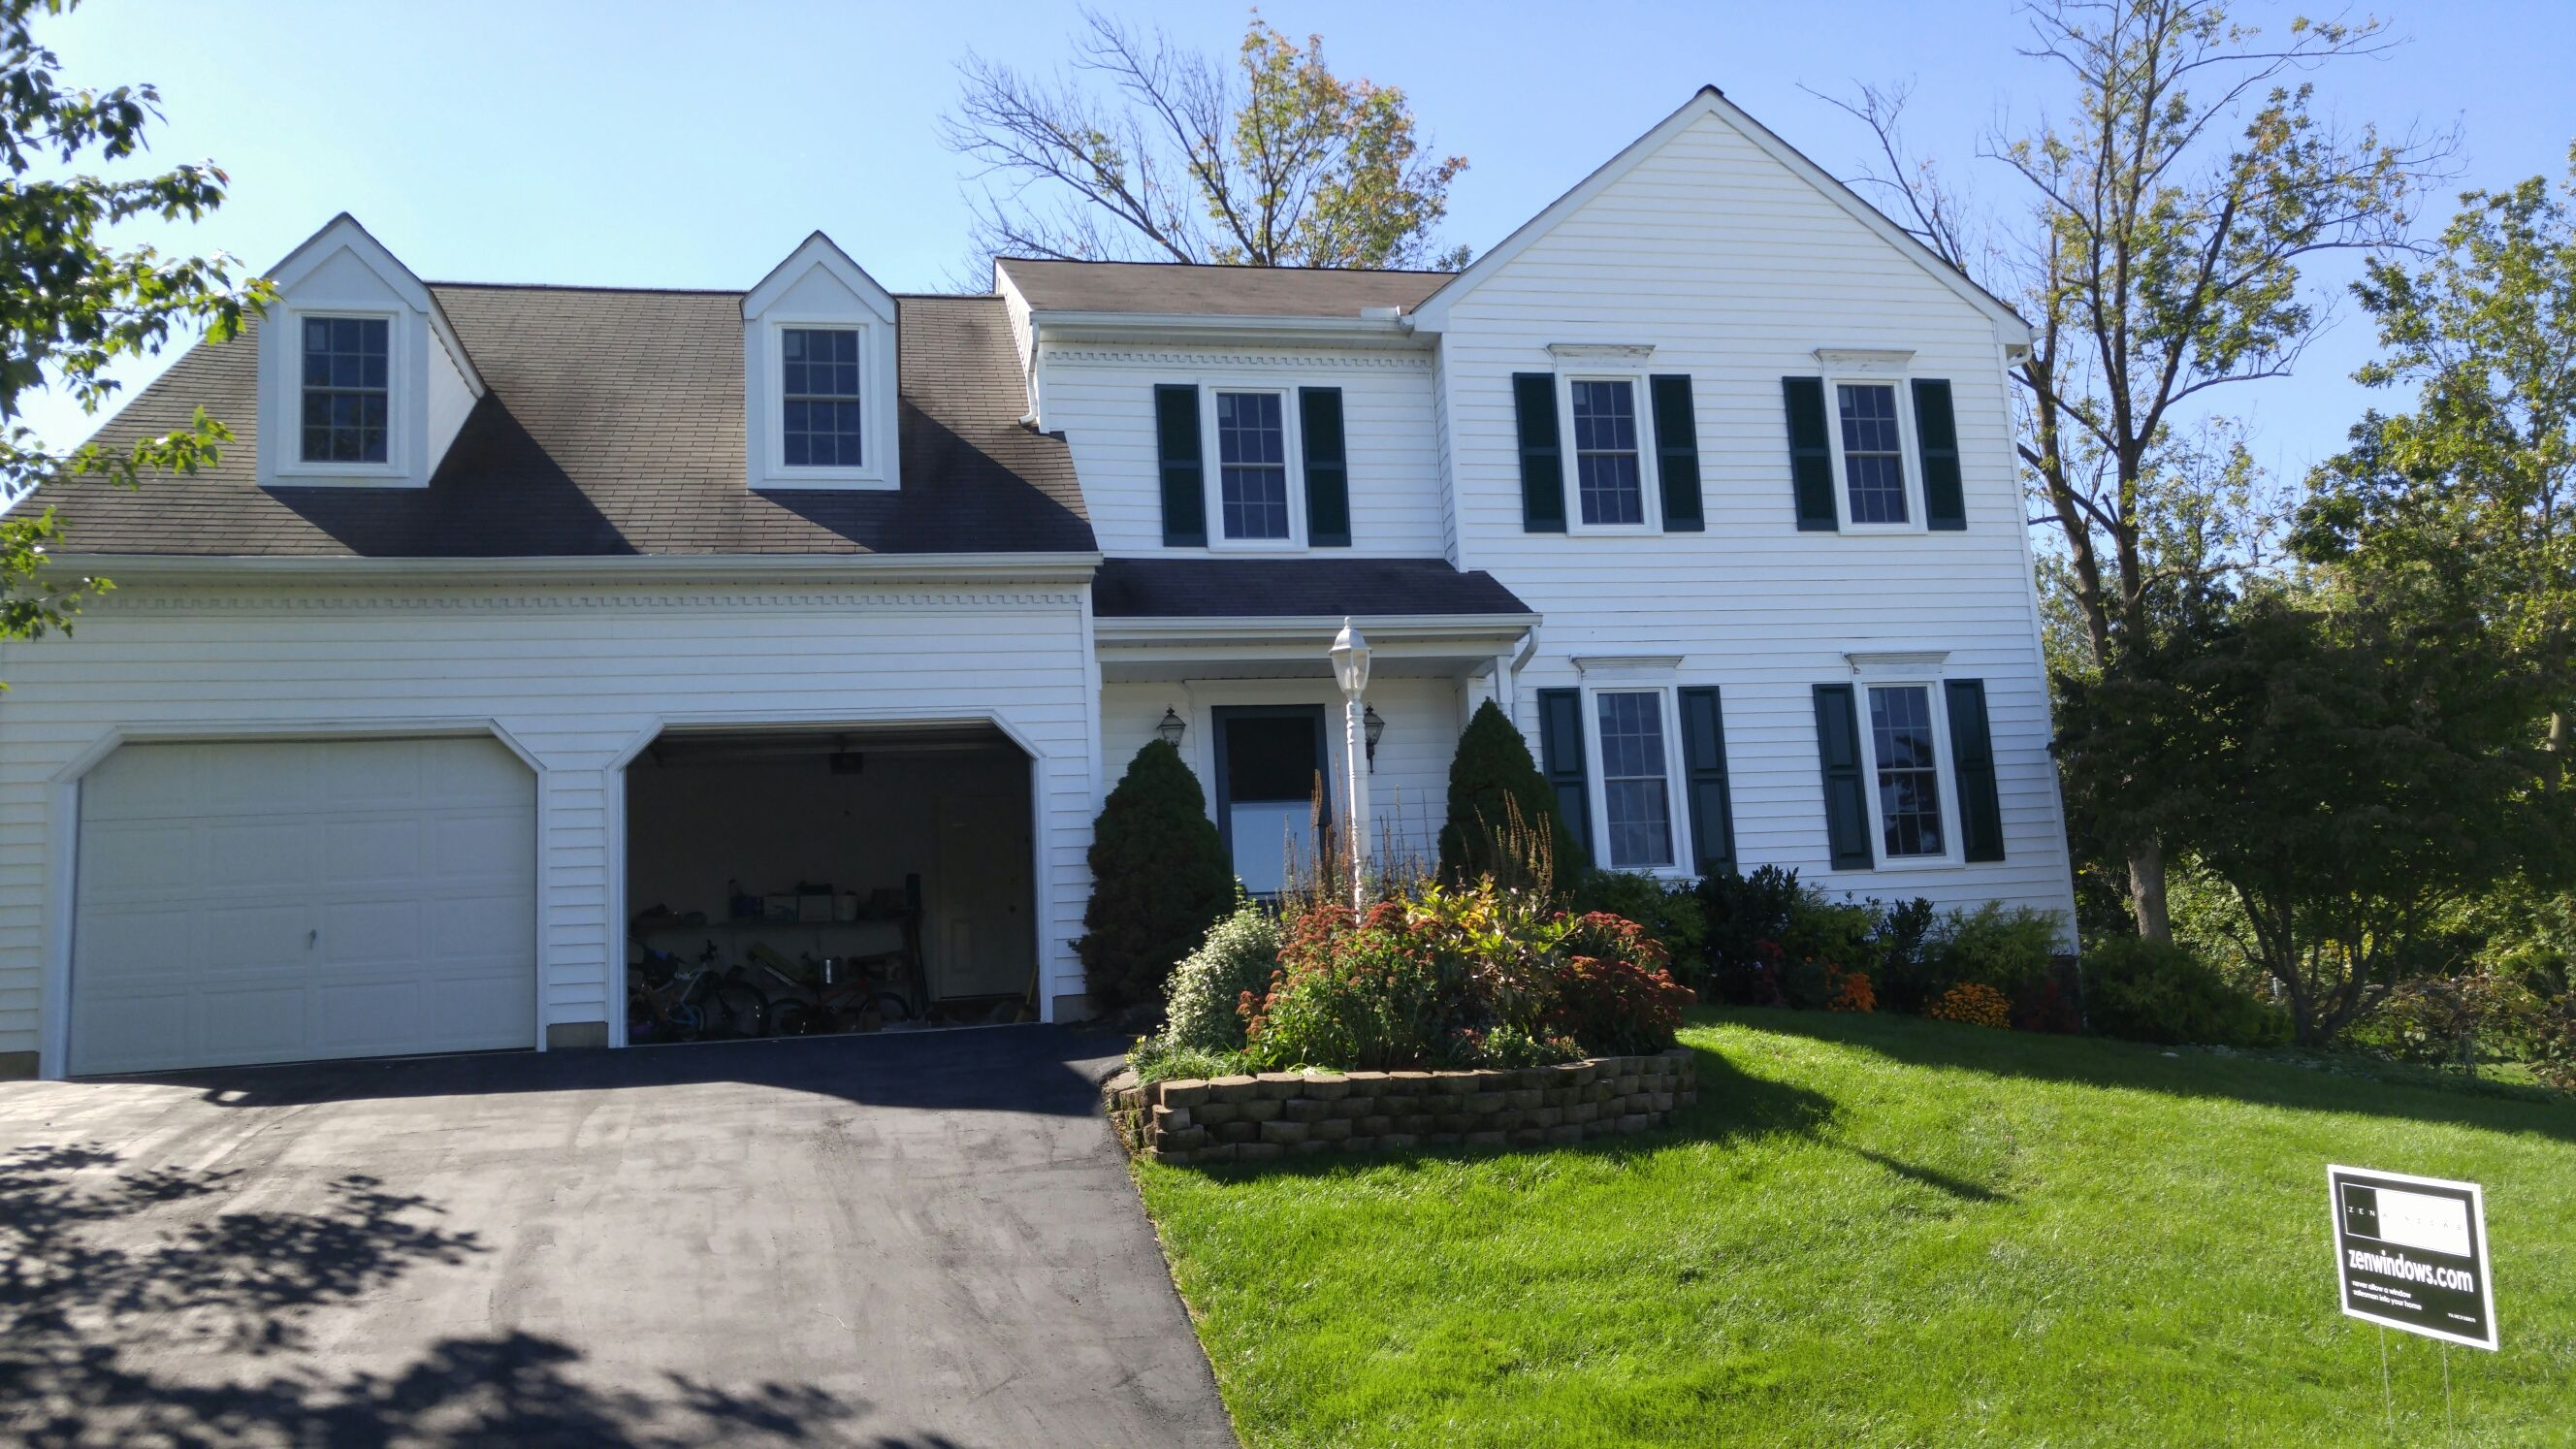 Replacement Window Installation In Palmyra Pa Lebanon County Window Installation Installing Replacement Windows Windows